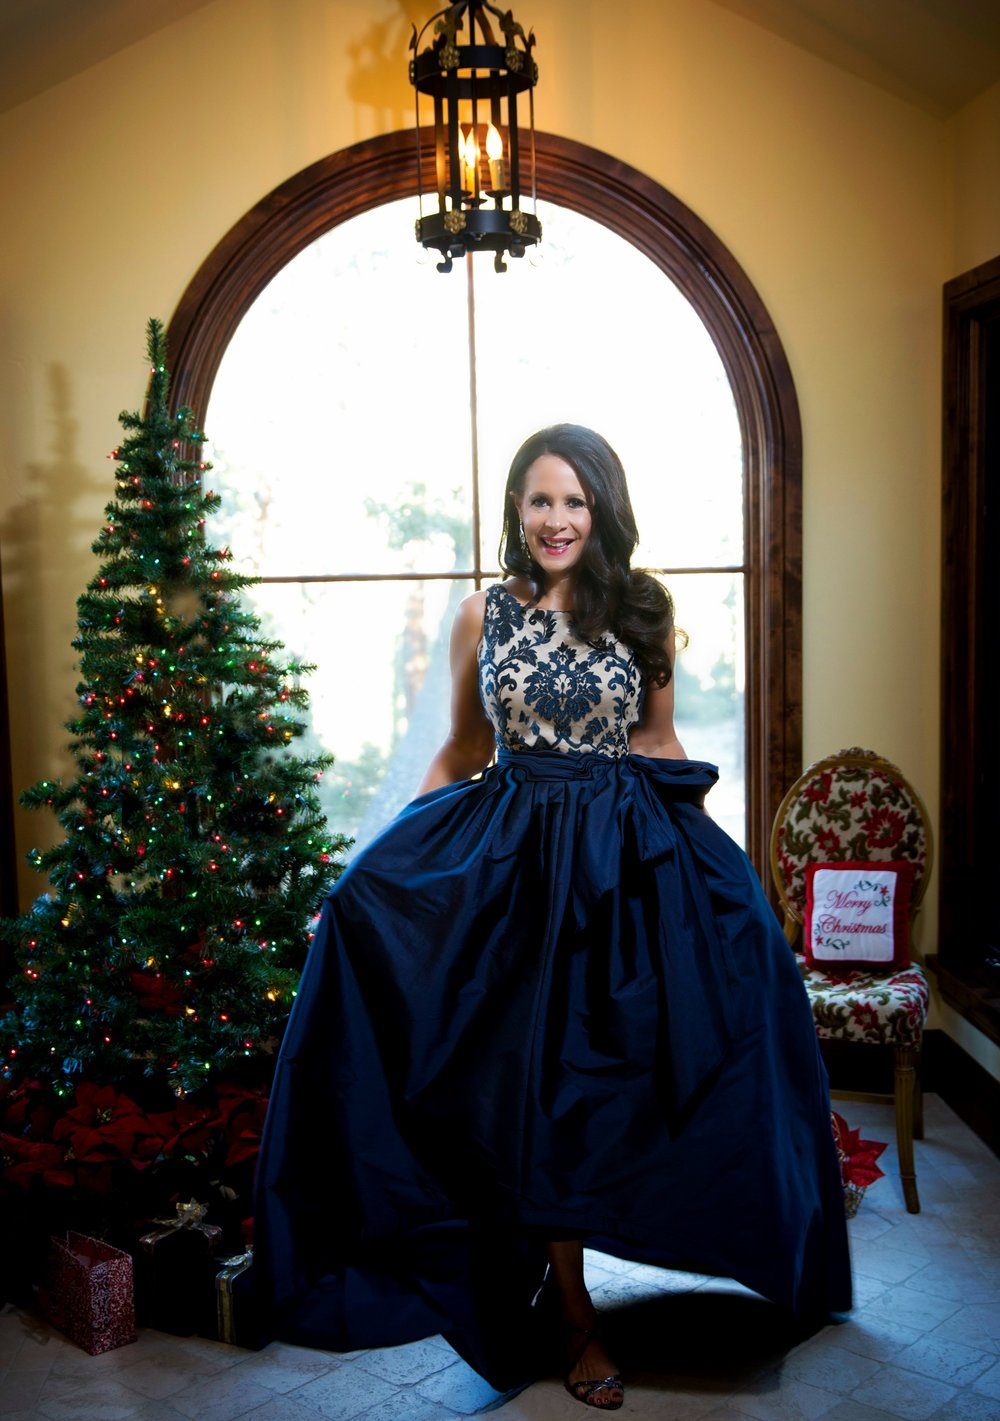 A Christmas Ball Gown | GRACE.GRIT.GLAMOUR. | Colorado Lifestyle ...